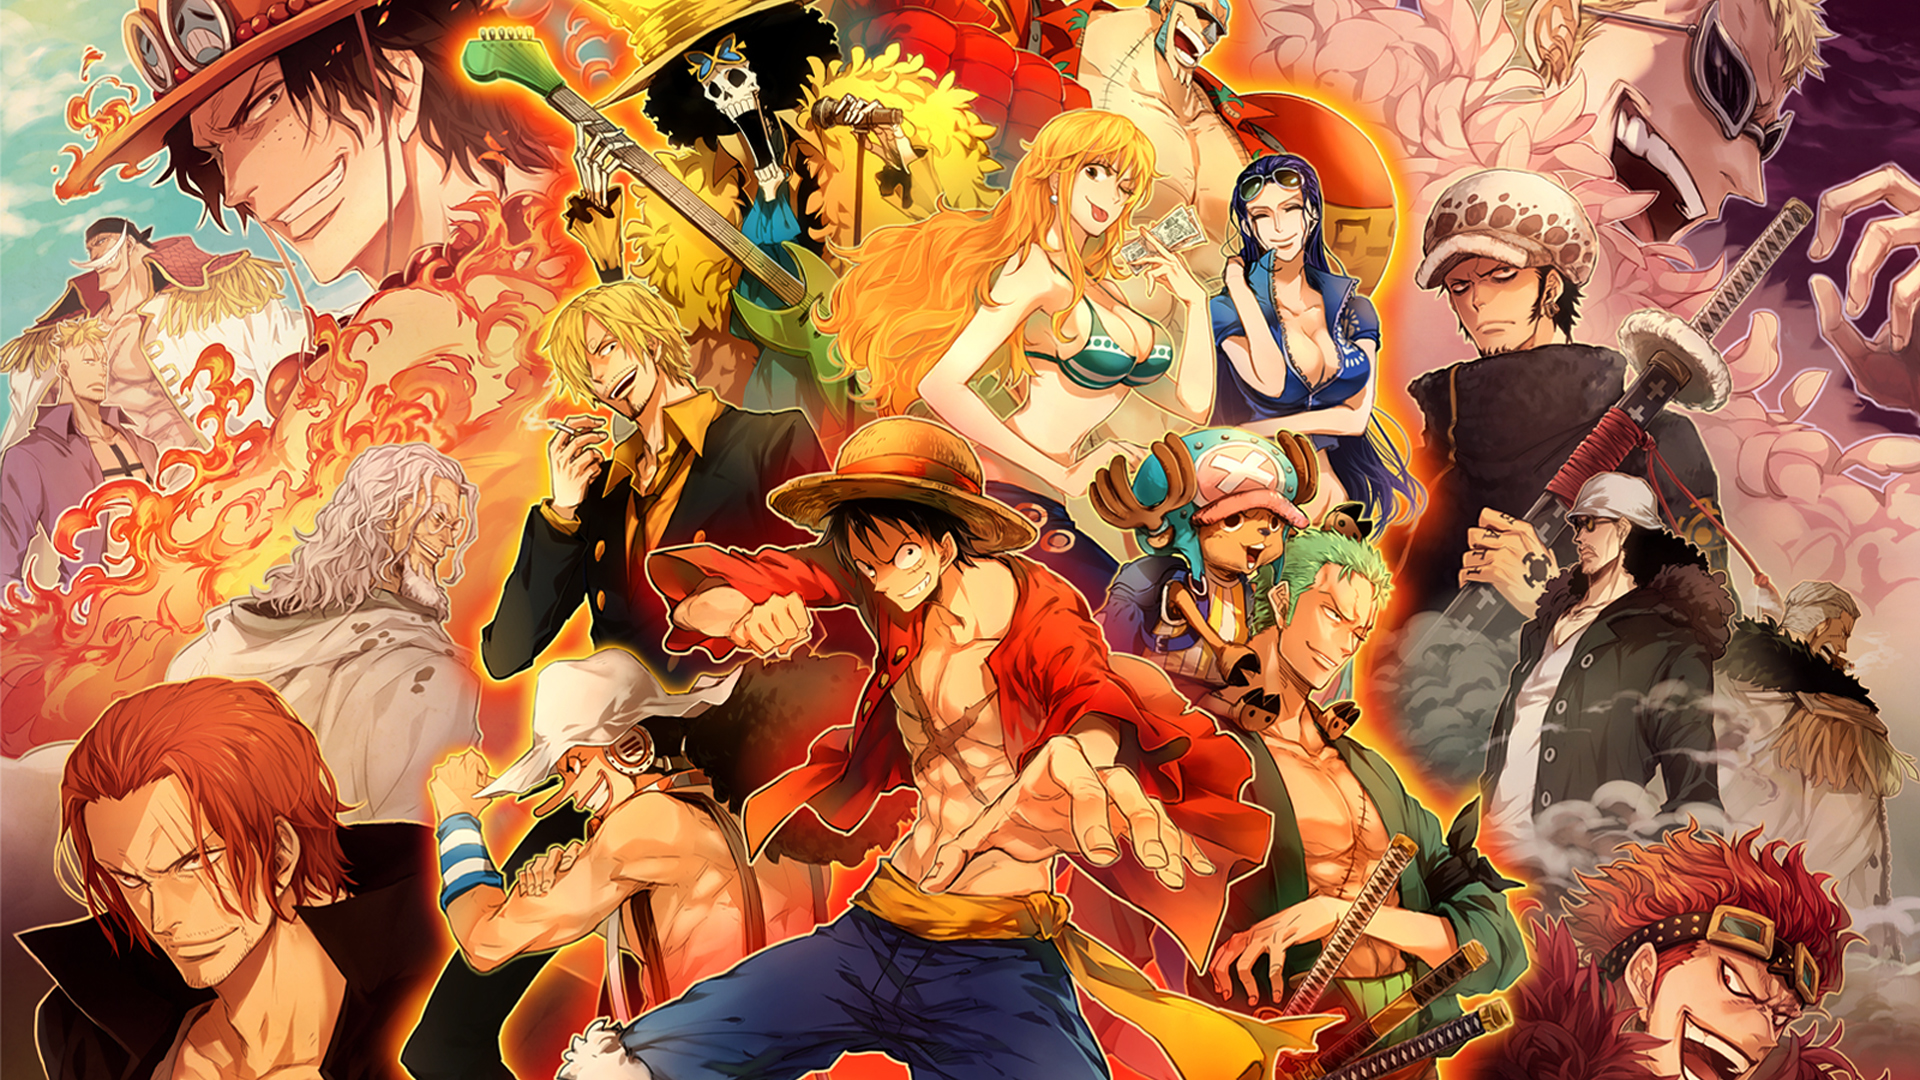 Manga Anime-one-piece-wallpaper-hd-1920x1080